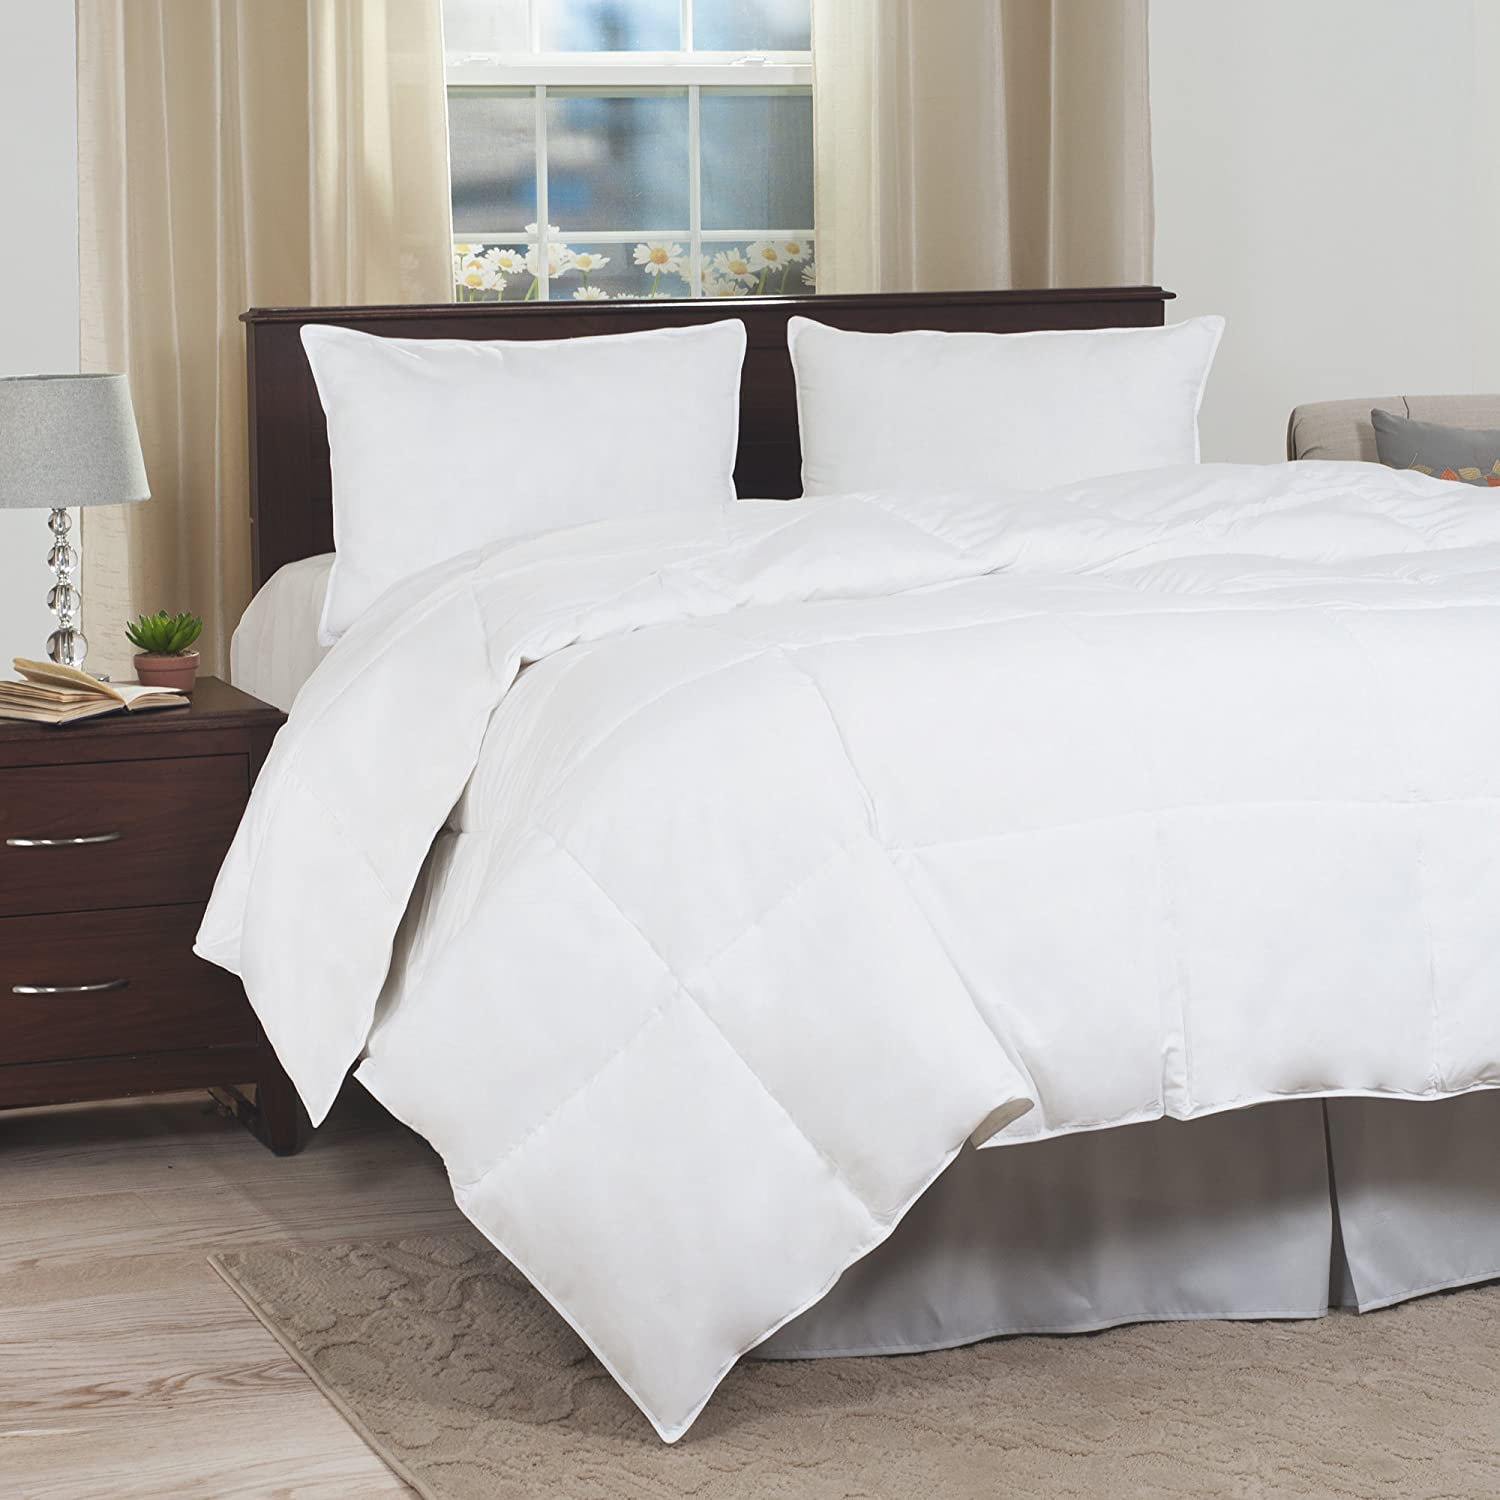 Amazon.com: Lavish Home Full/Queen Comforter, Ultra-Soft White Goose Down Alternative Comforter, Hypo-Allergenic, Quilted Box Stitched, ...